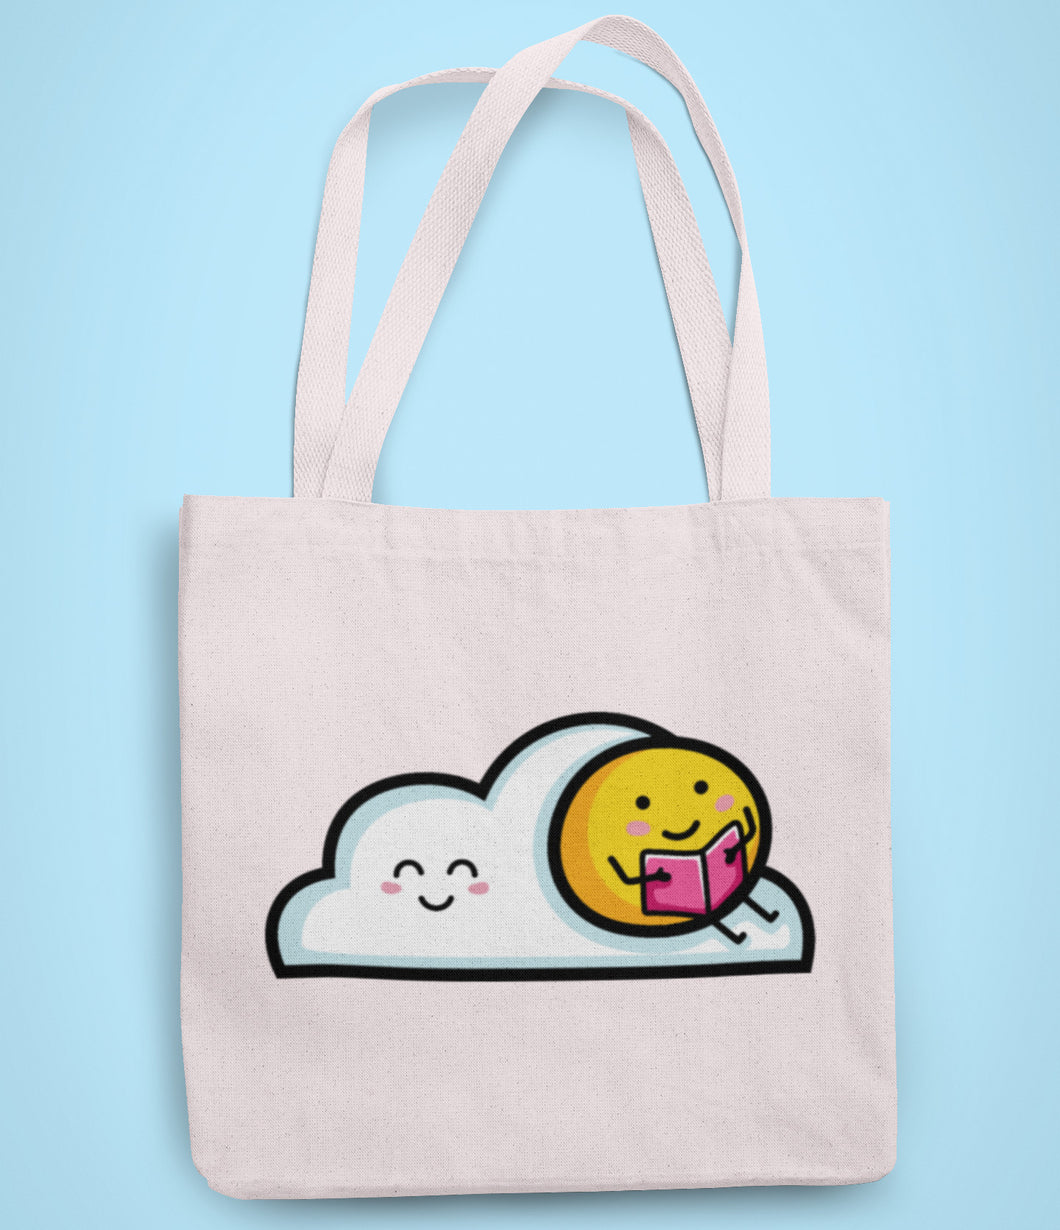 Kawaii cute sun sitting on a cloud reading a book design on a recycled cotton and polyester tote bag